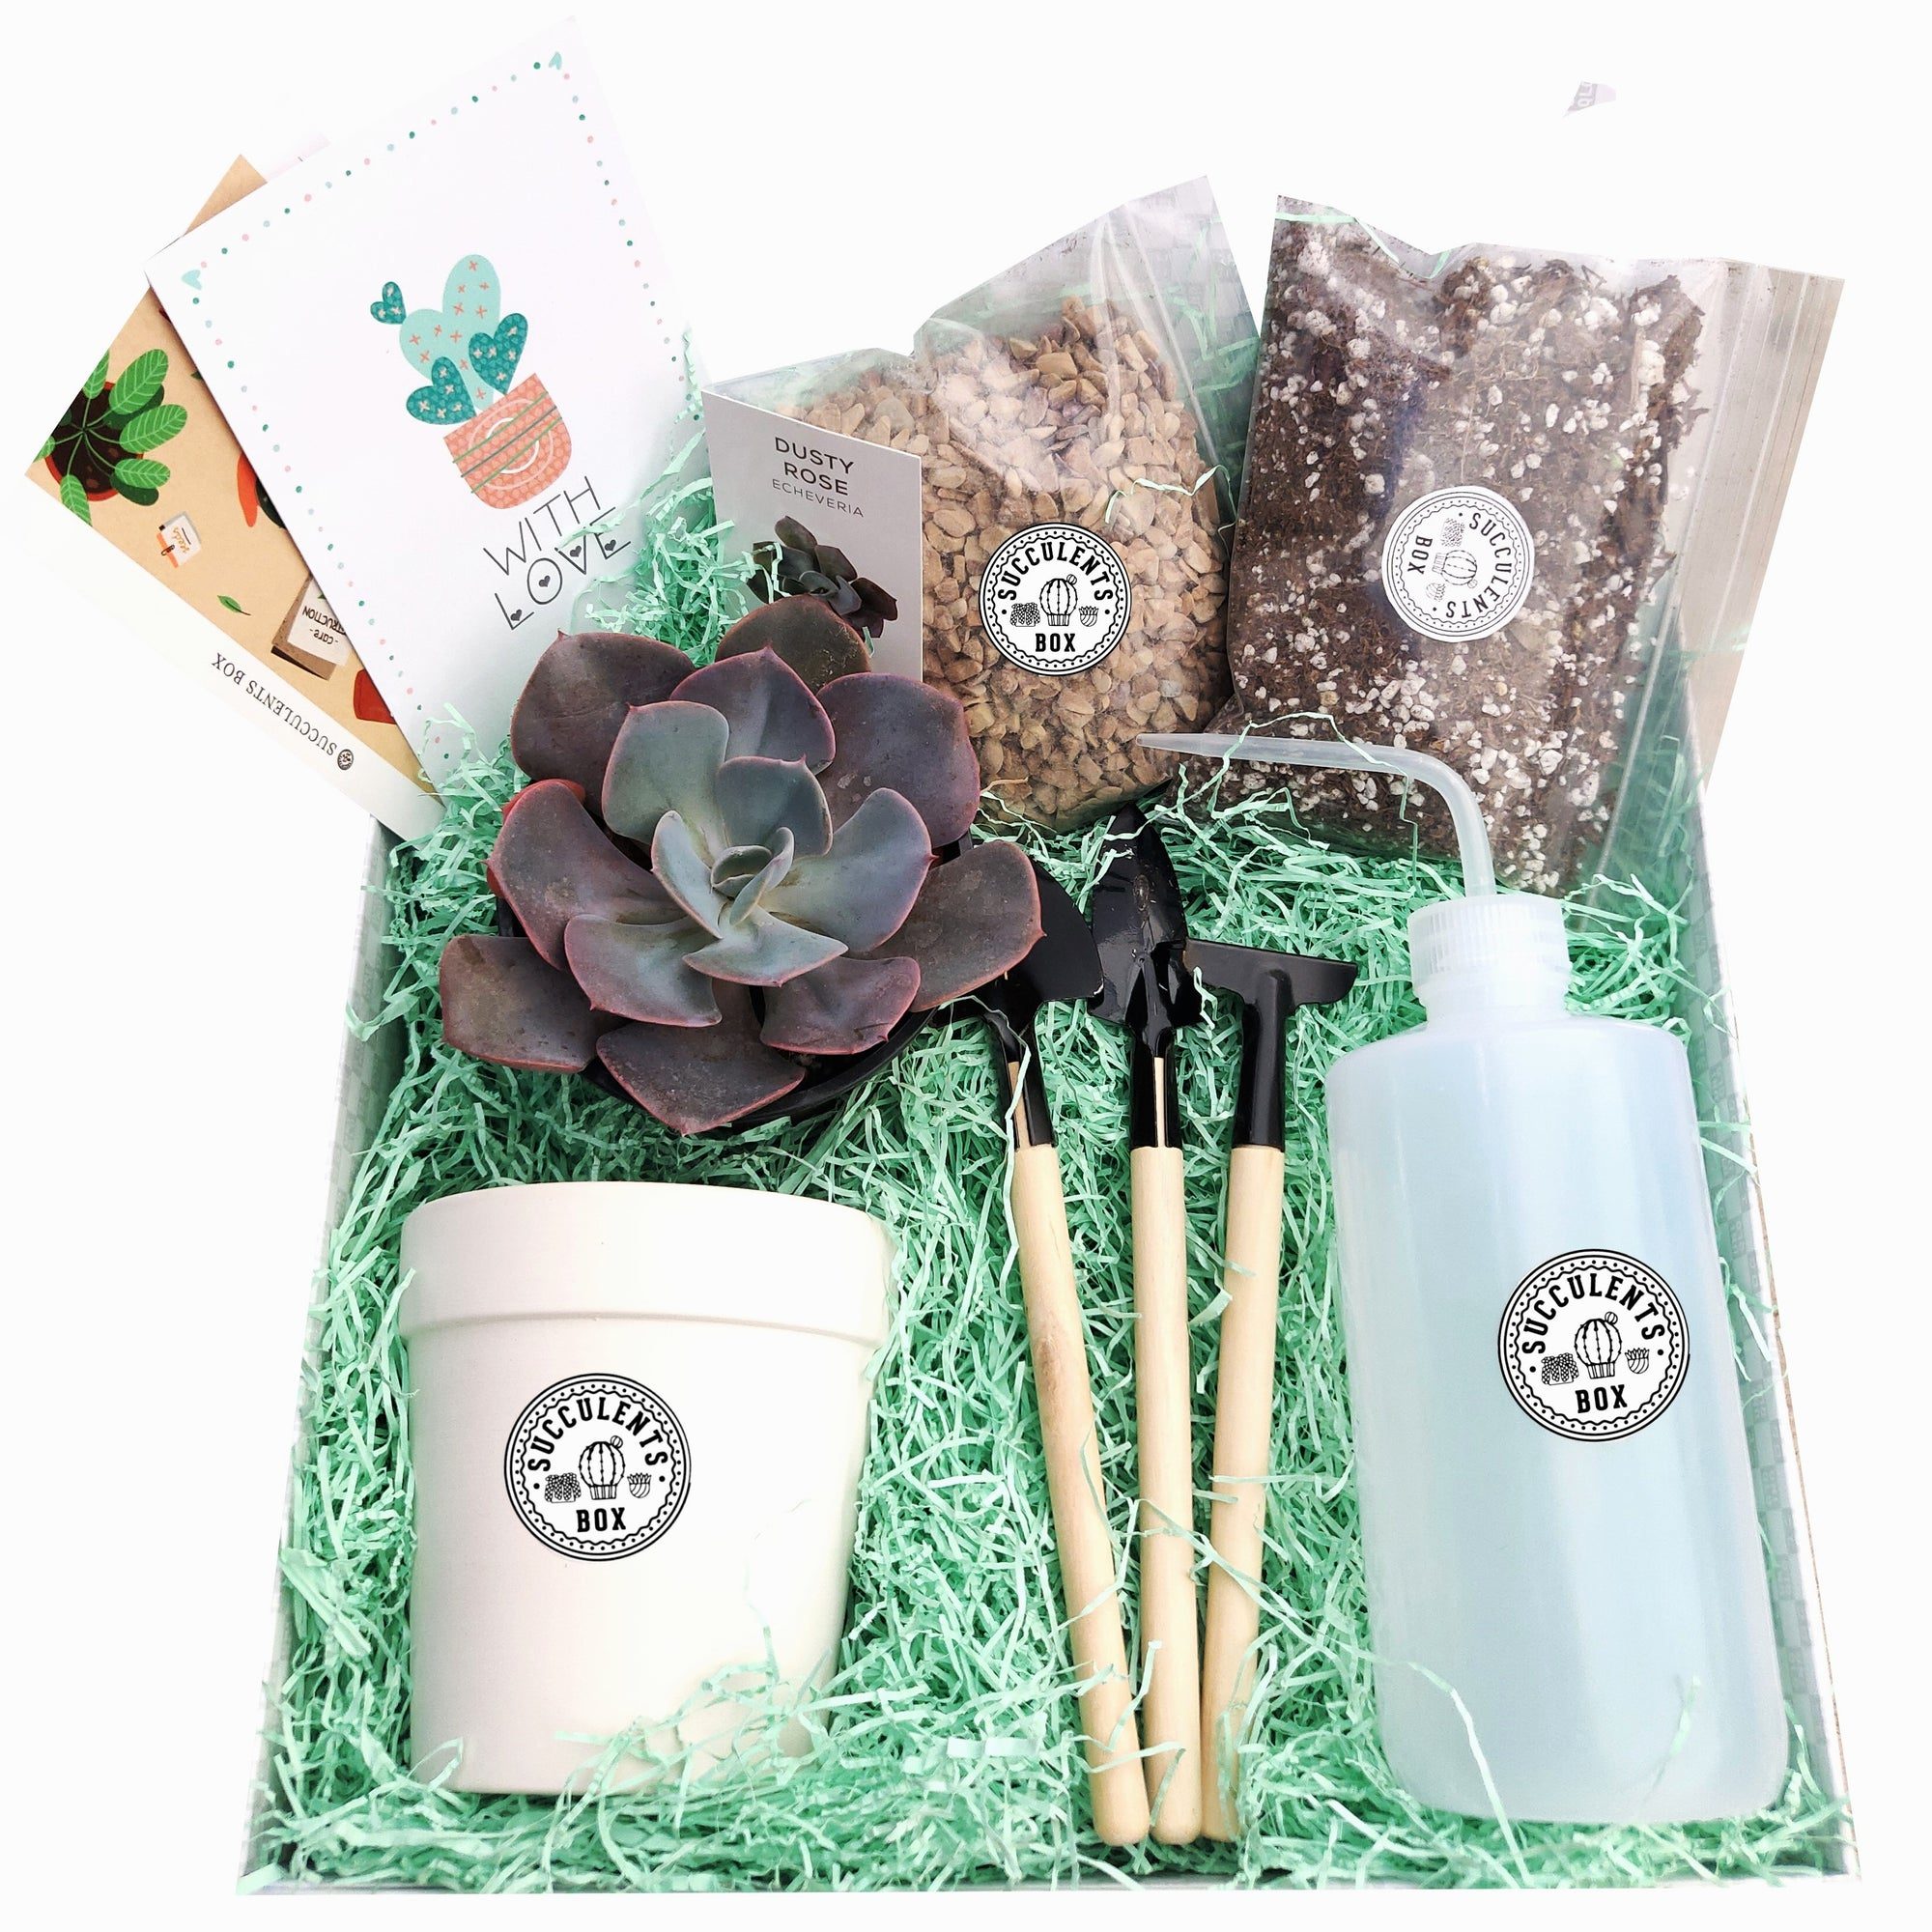 Beginner Kit Gift Box for sale, Succulent Starter Kit, Succulent Kit for Beginner, Best Succulent Gift for Beginner, Succulent Beginner Kit, Succulent Gift Decor Ideas